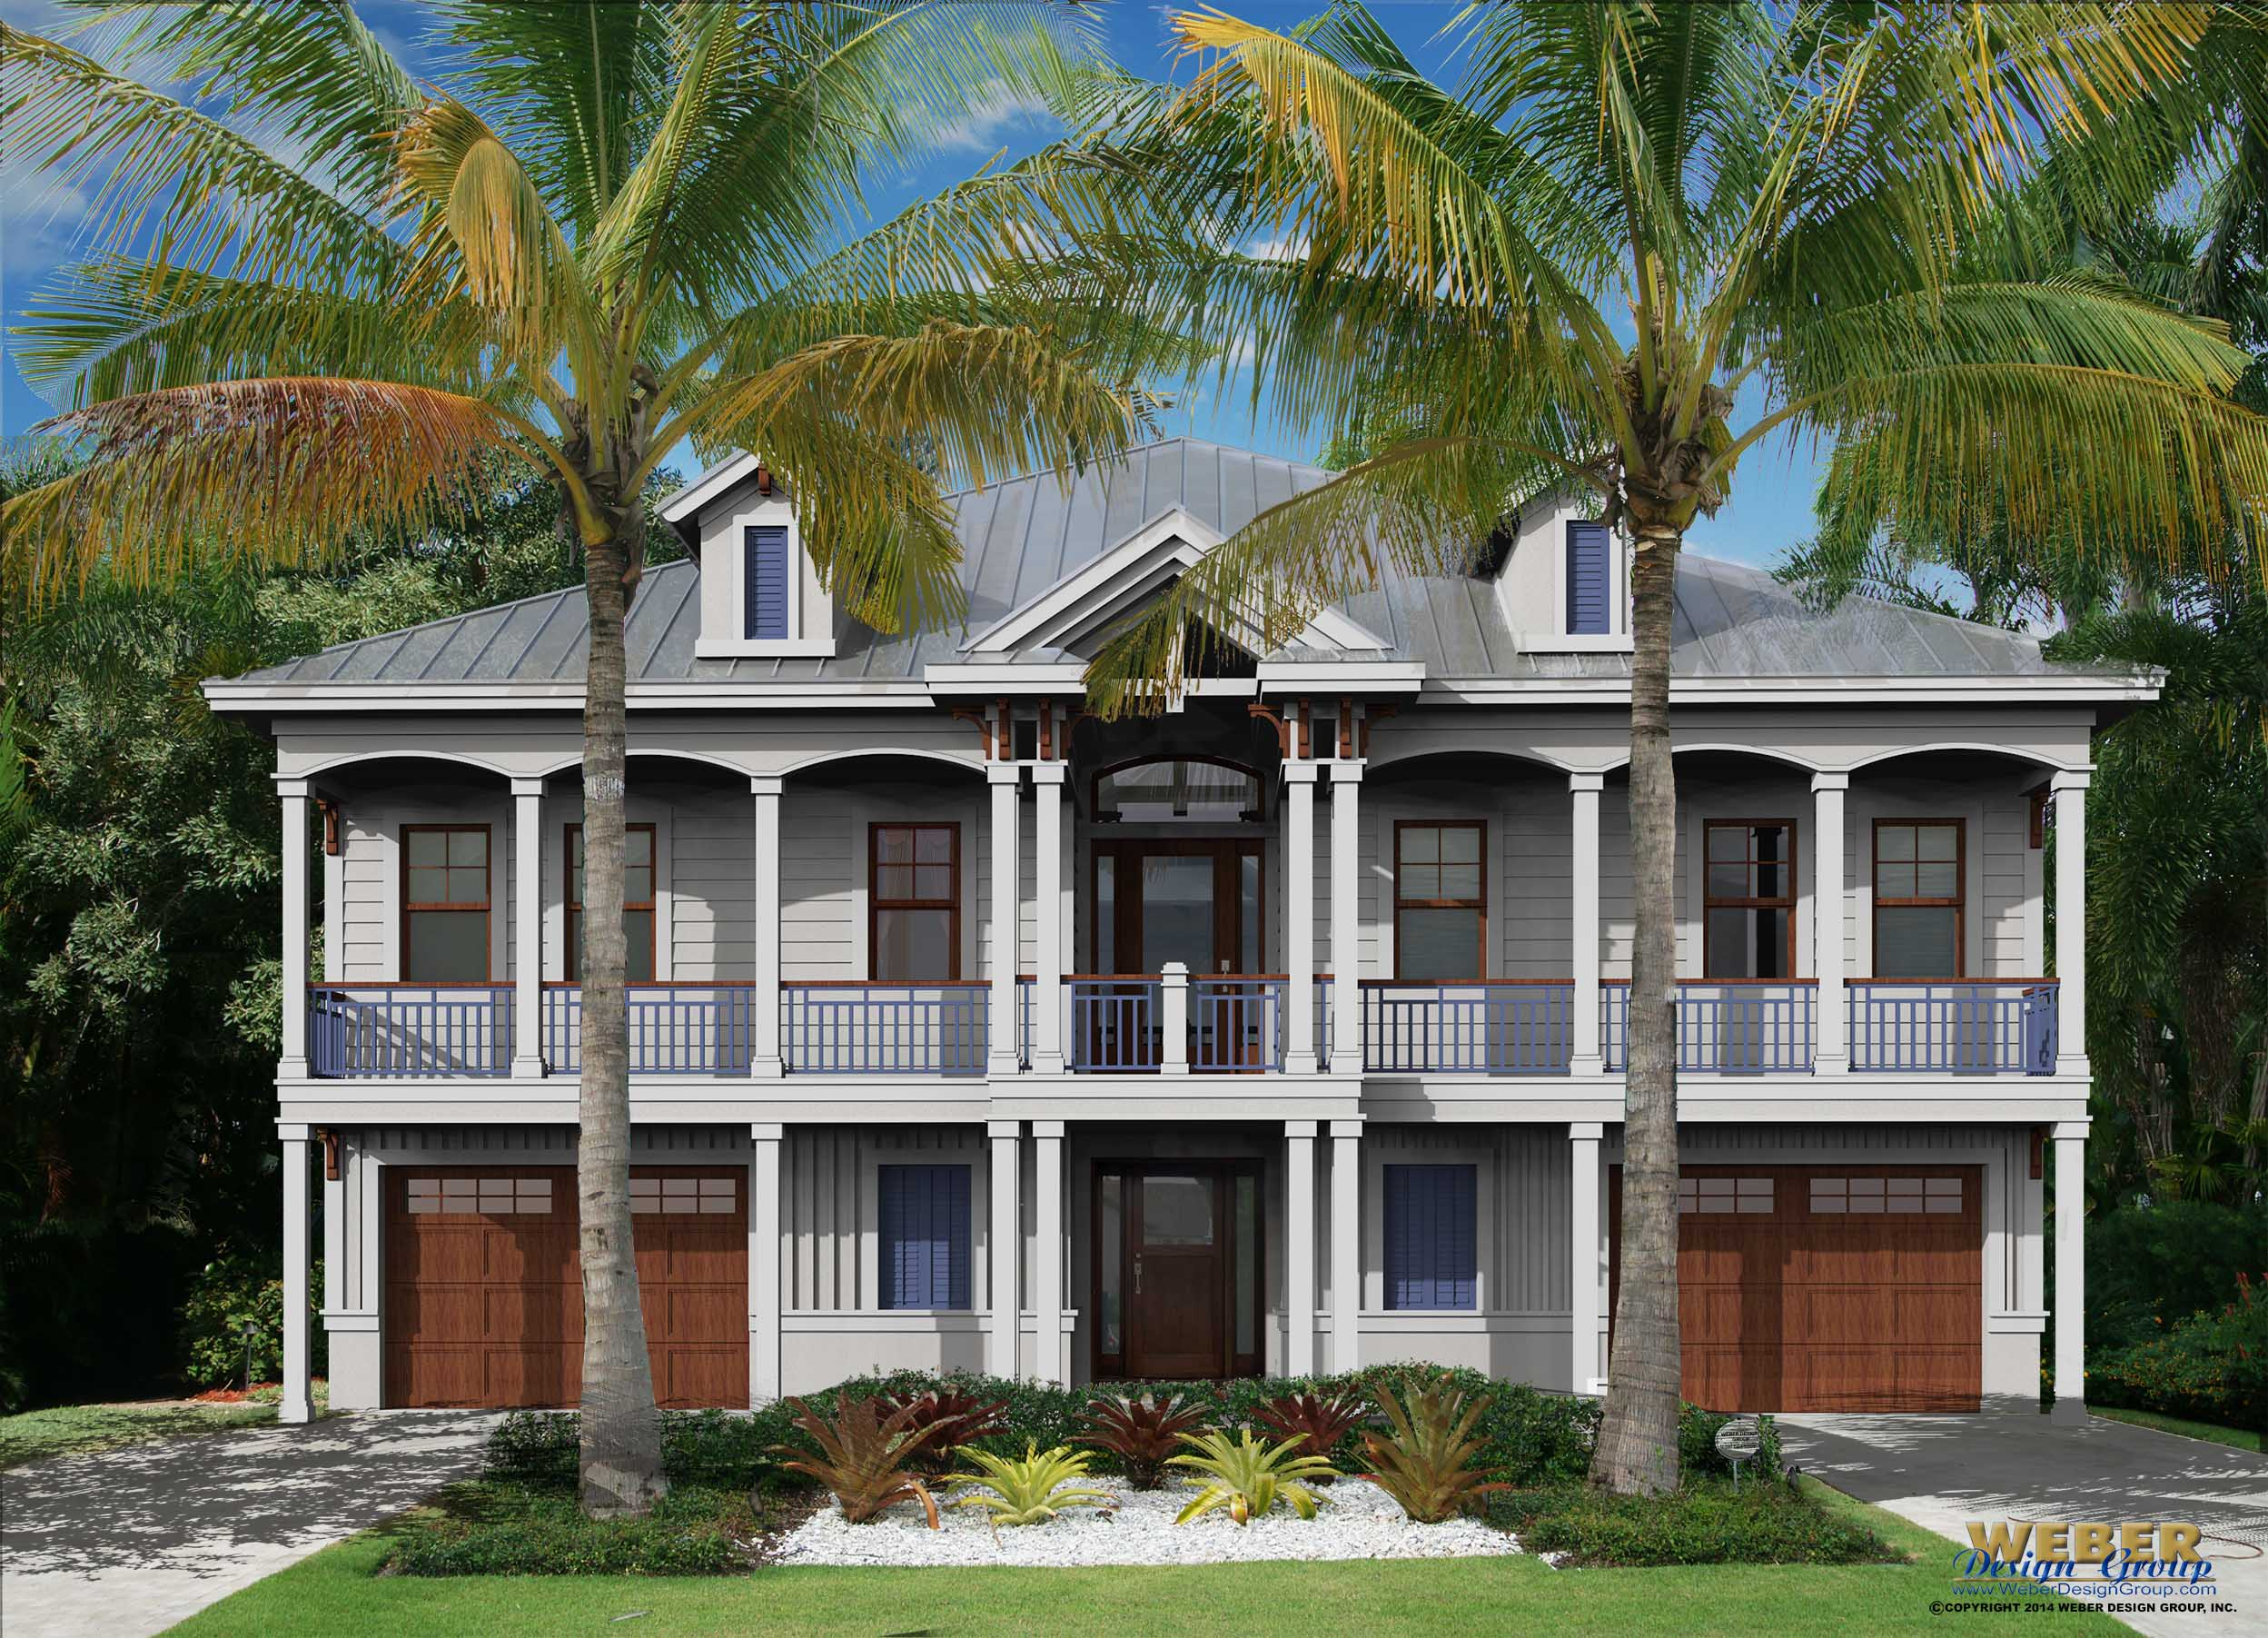 coral bay house plan - Waterfront House Plans